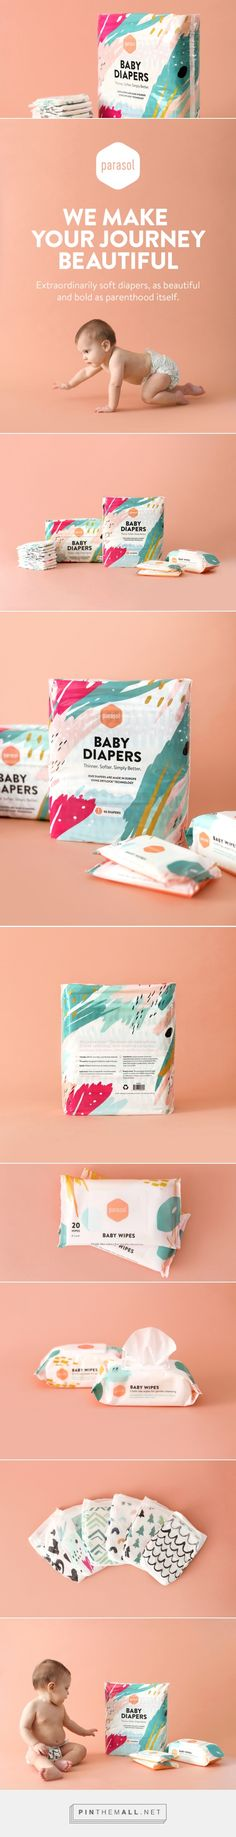 Parasol Co Diapers + Wipes — The Dieline - Branding & Packaging - created via https://pinthemall.net